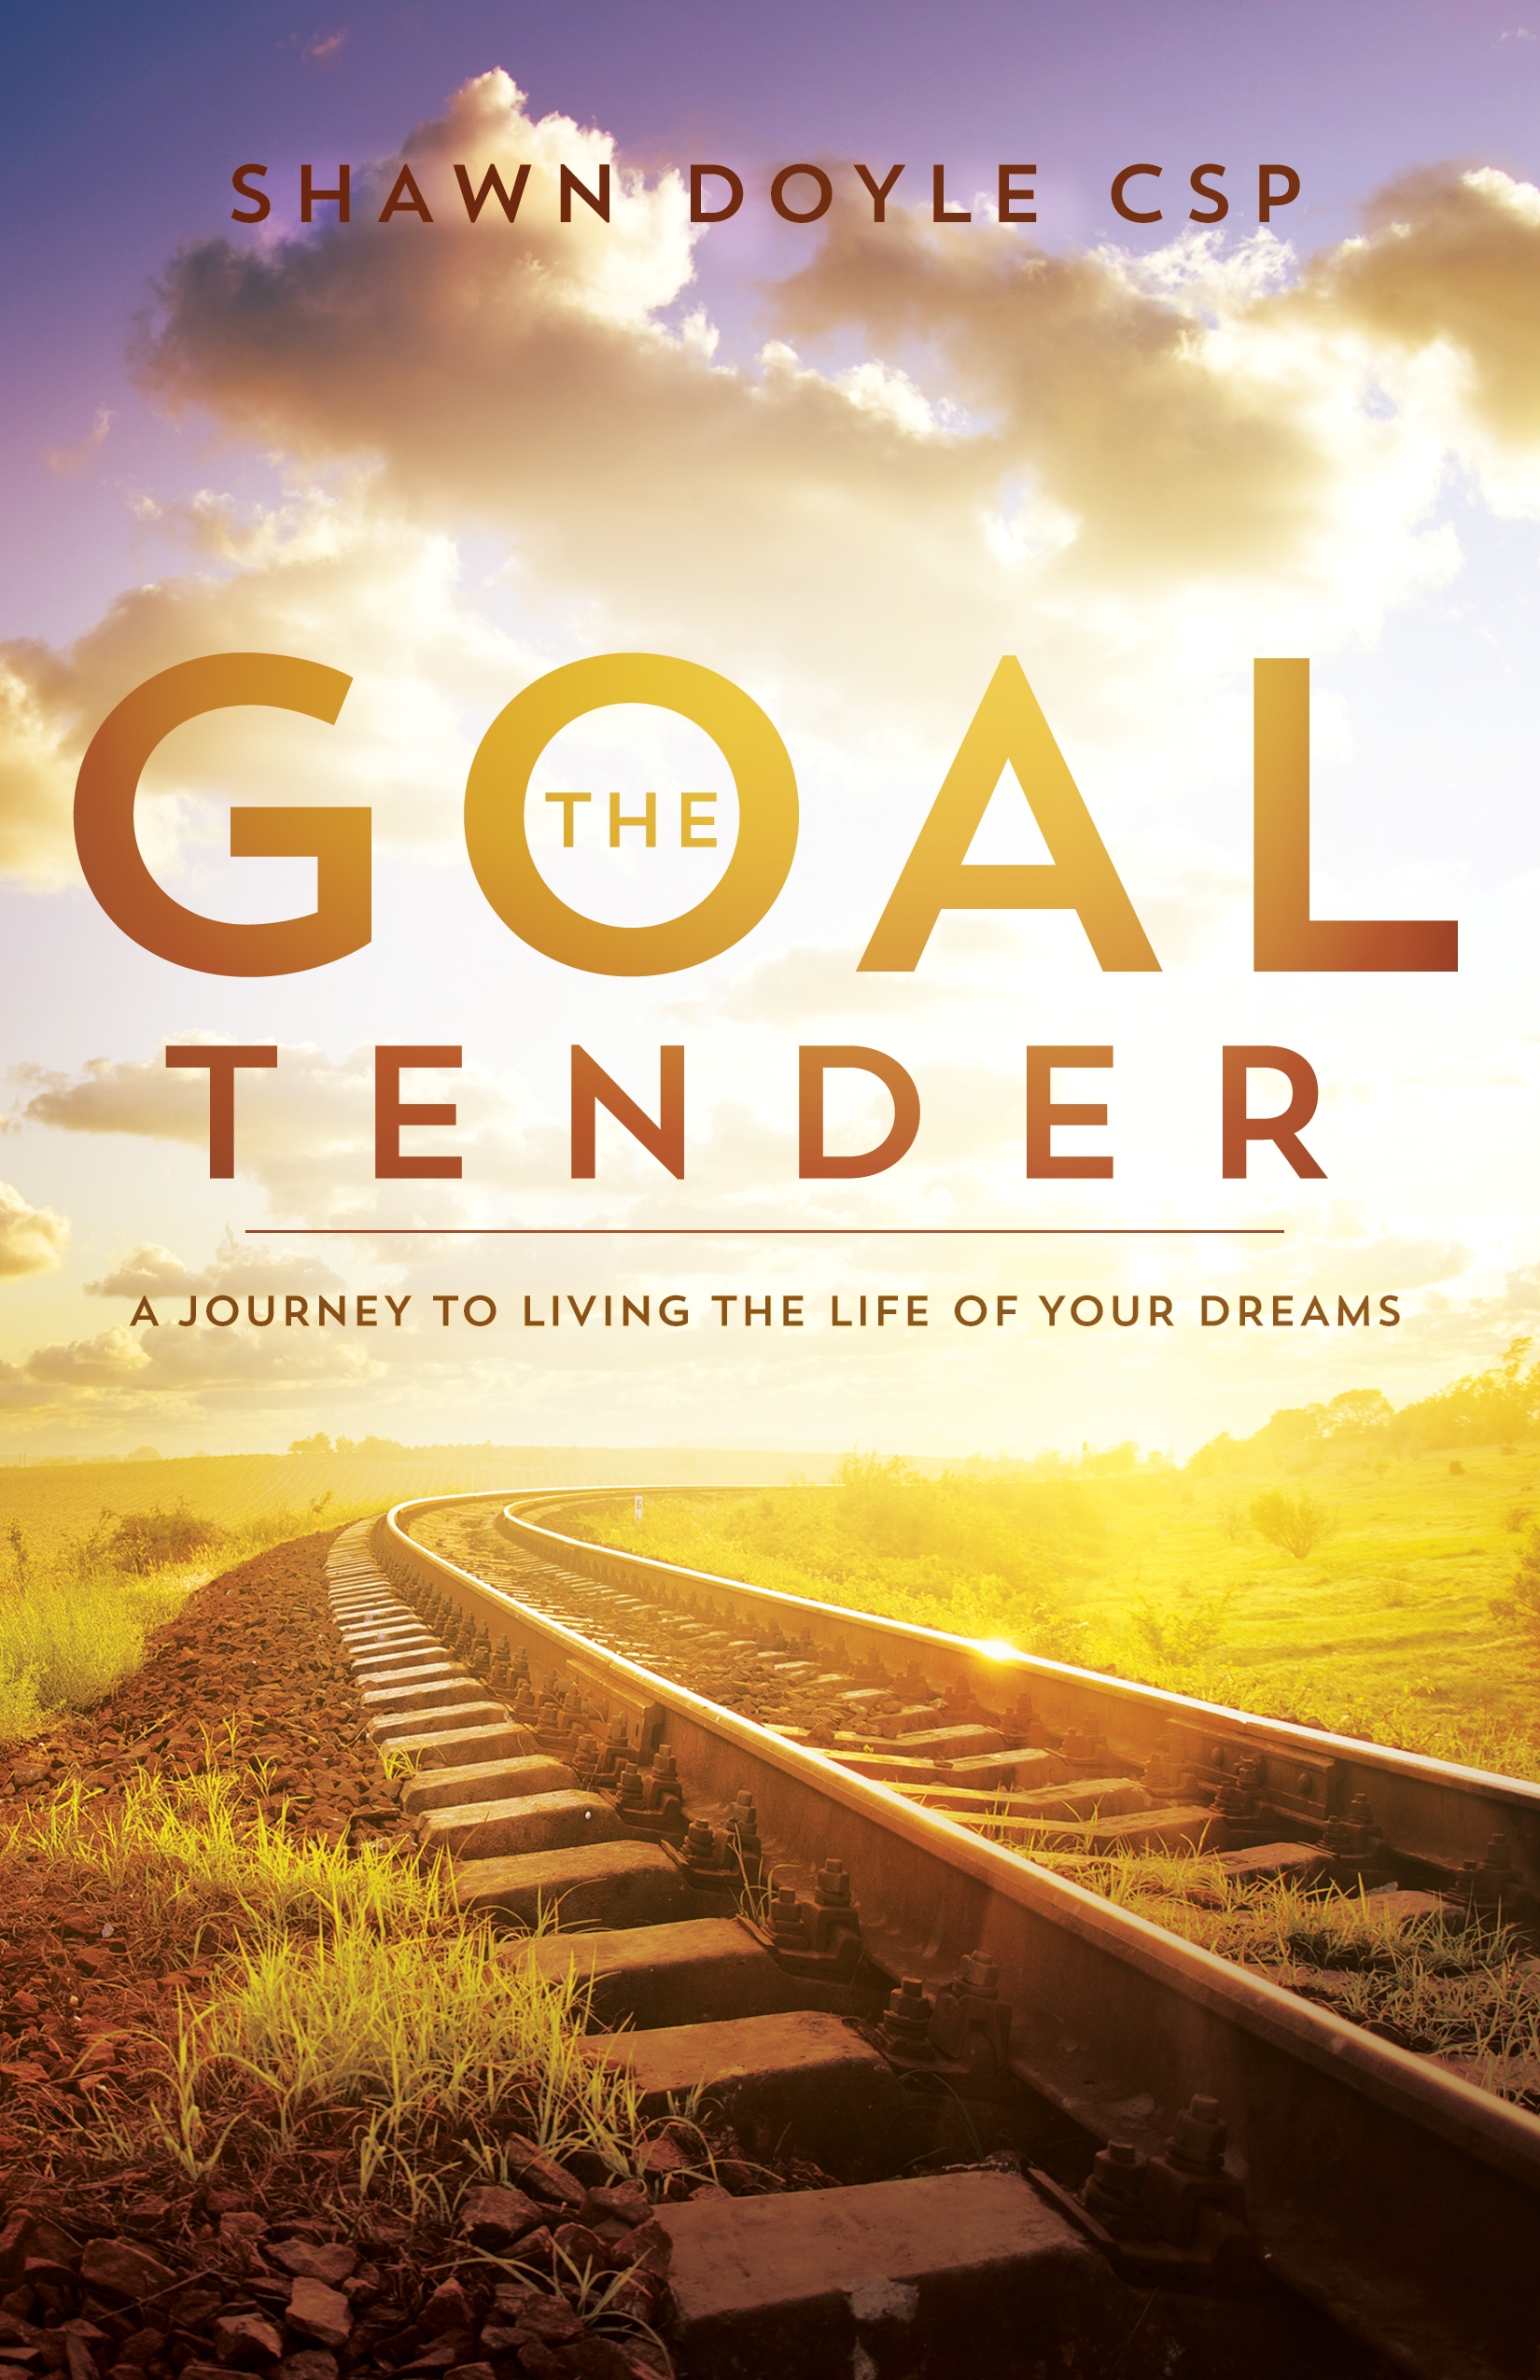 The Goal Tender - Shawn Doyle CSP